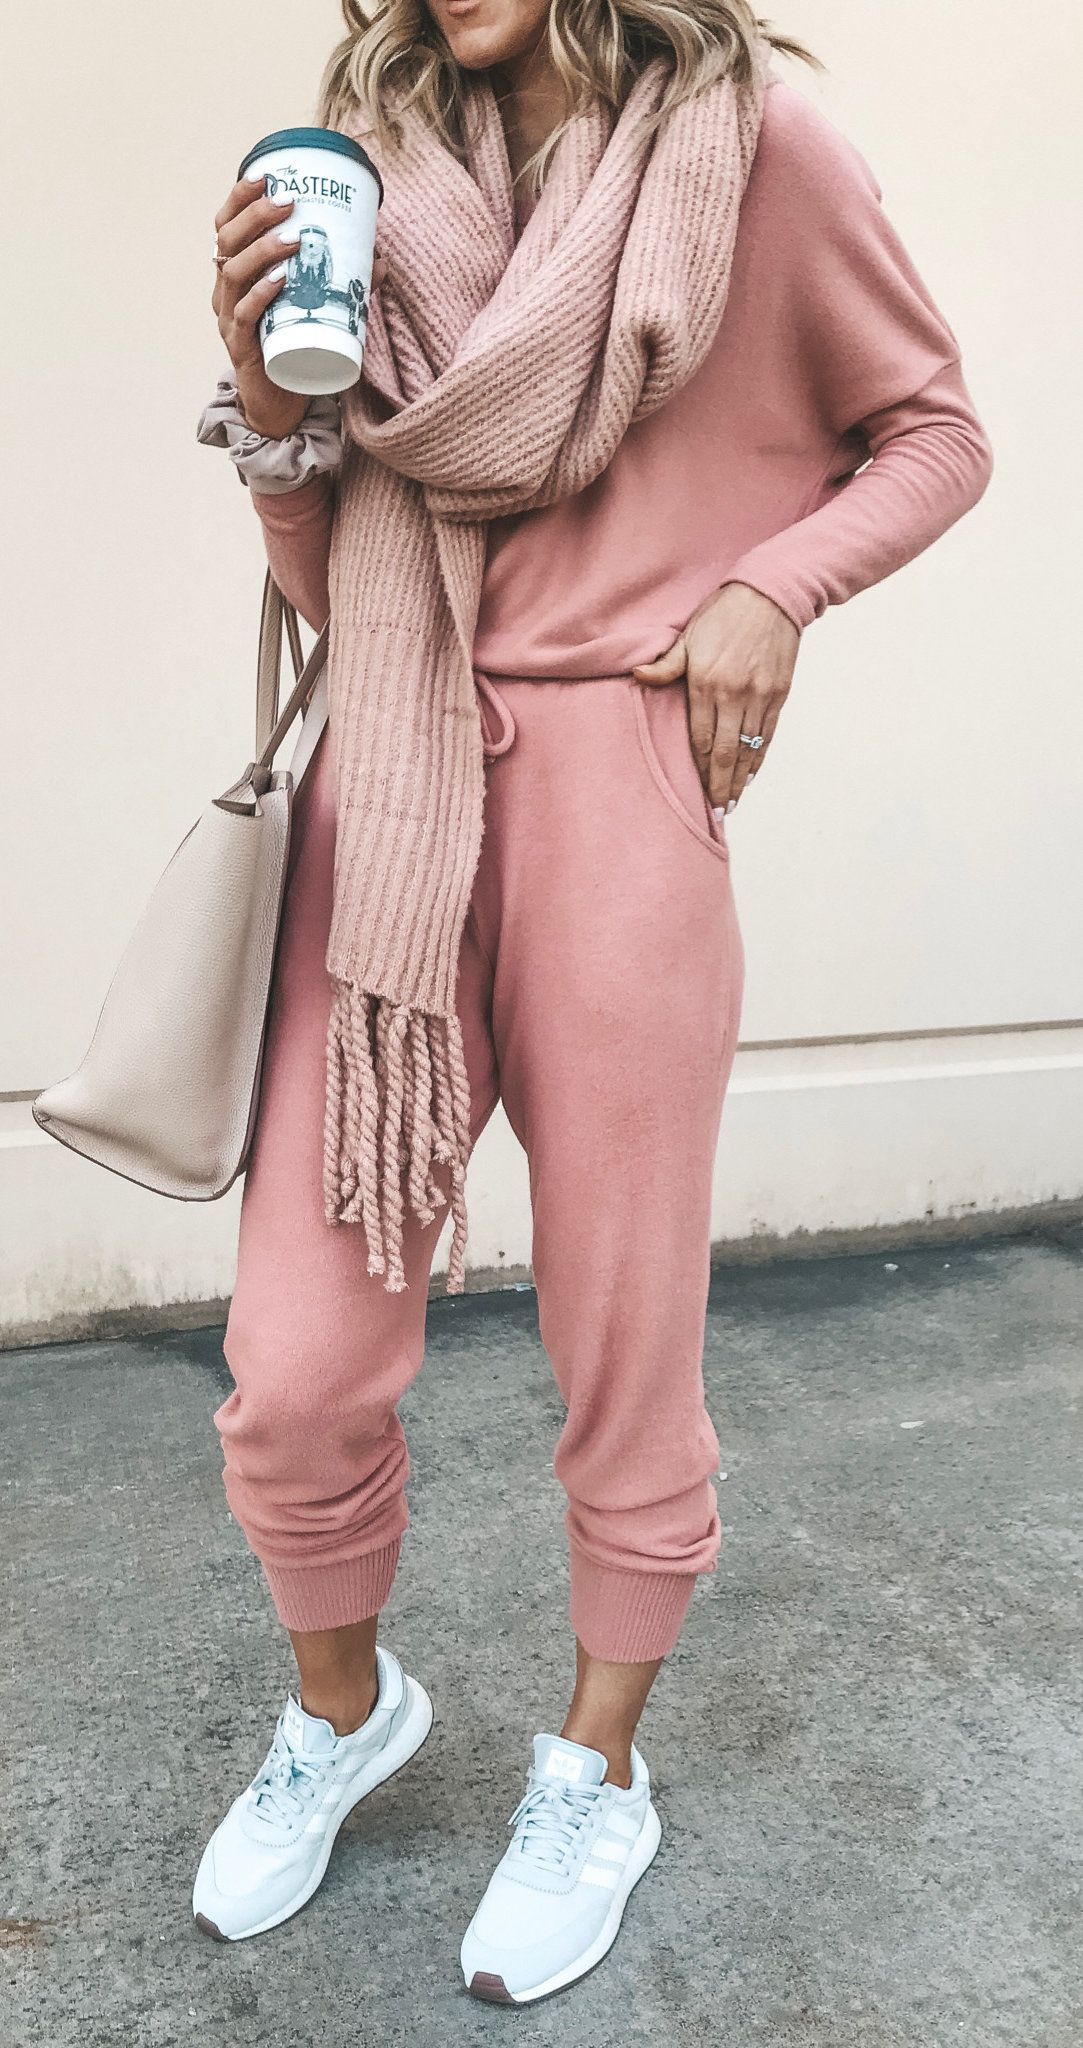 beige scarf | Preppy fall outfits, Sporty chic outfits, Cute